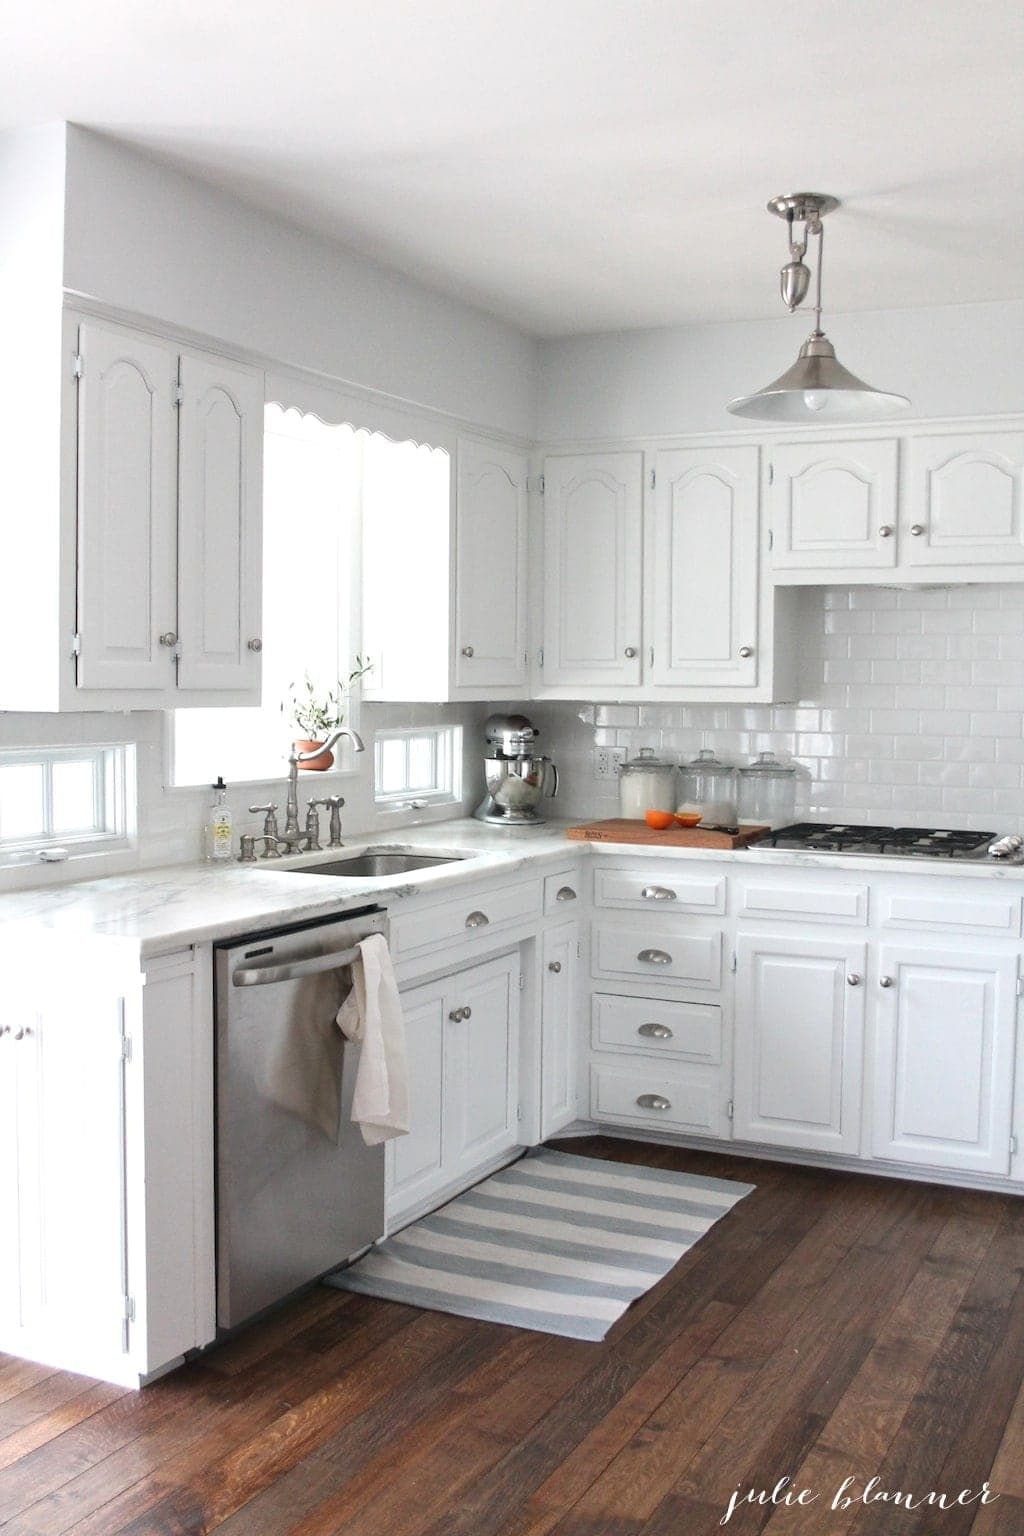 The risks benefits of marble countertops for Kitchen remodel ideas with white cabinets